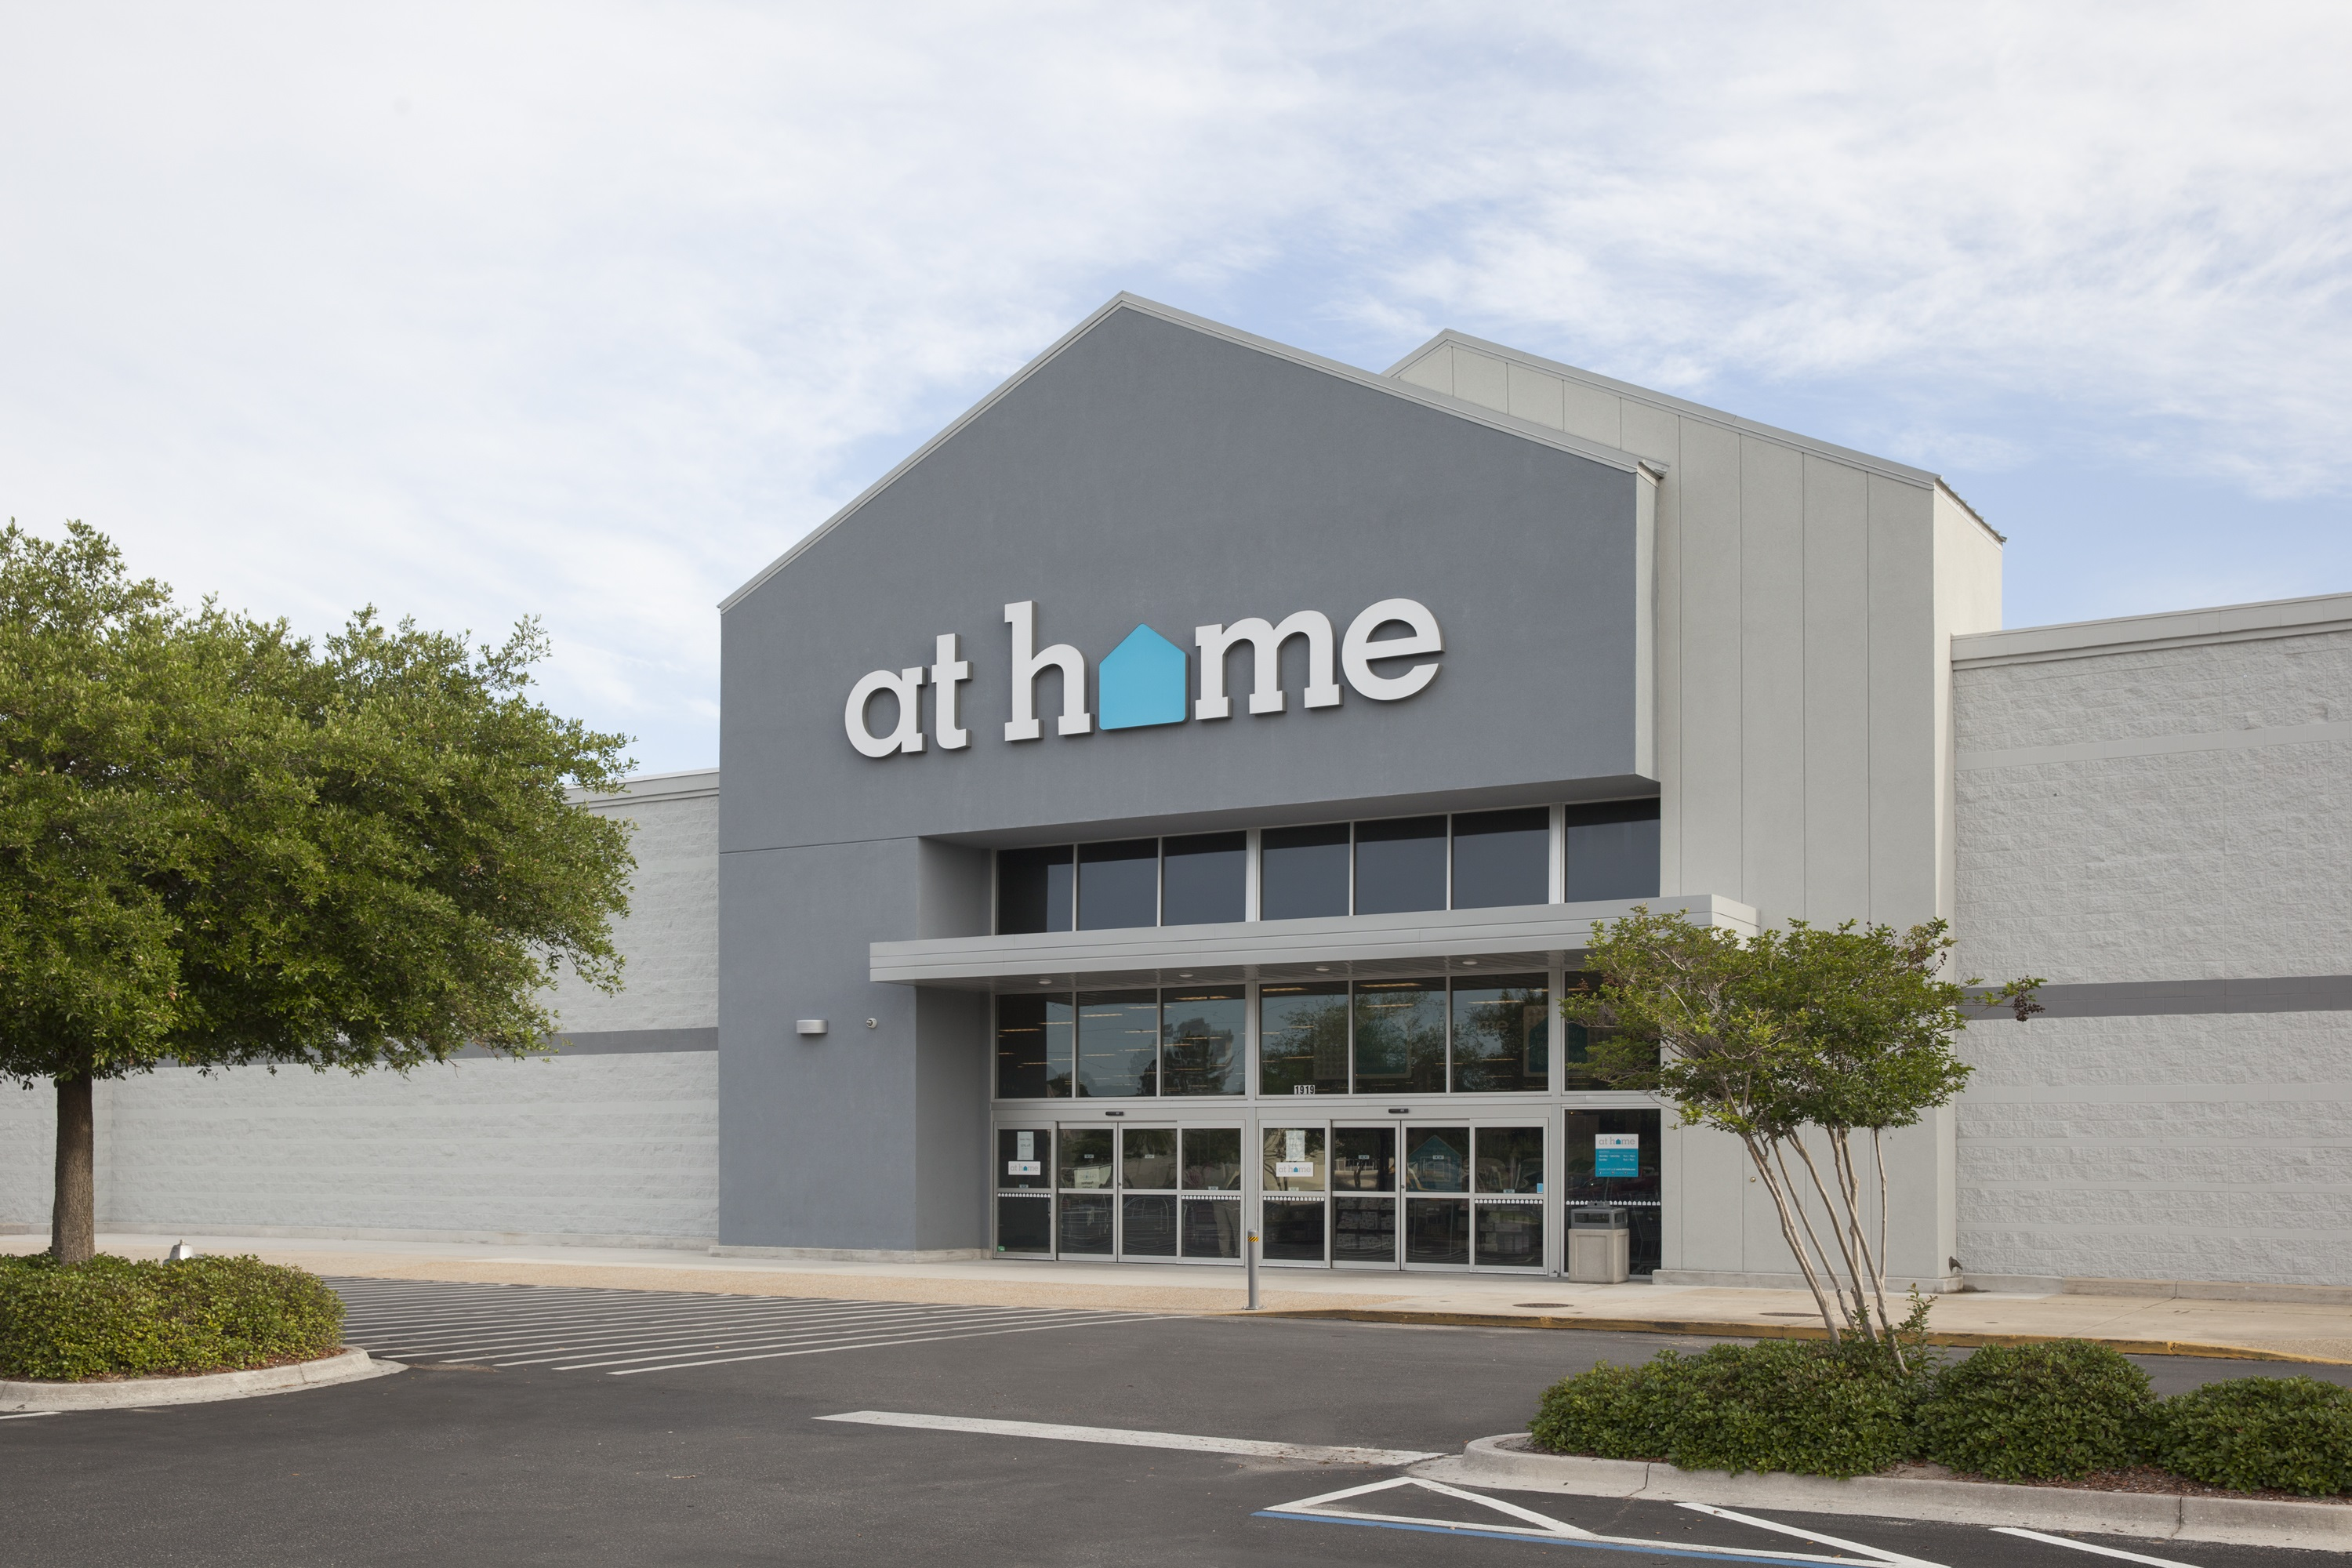 At Home store opens in Spotsylvania